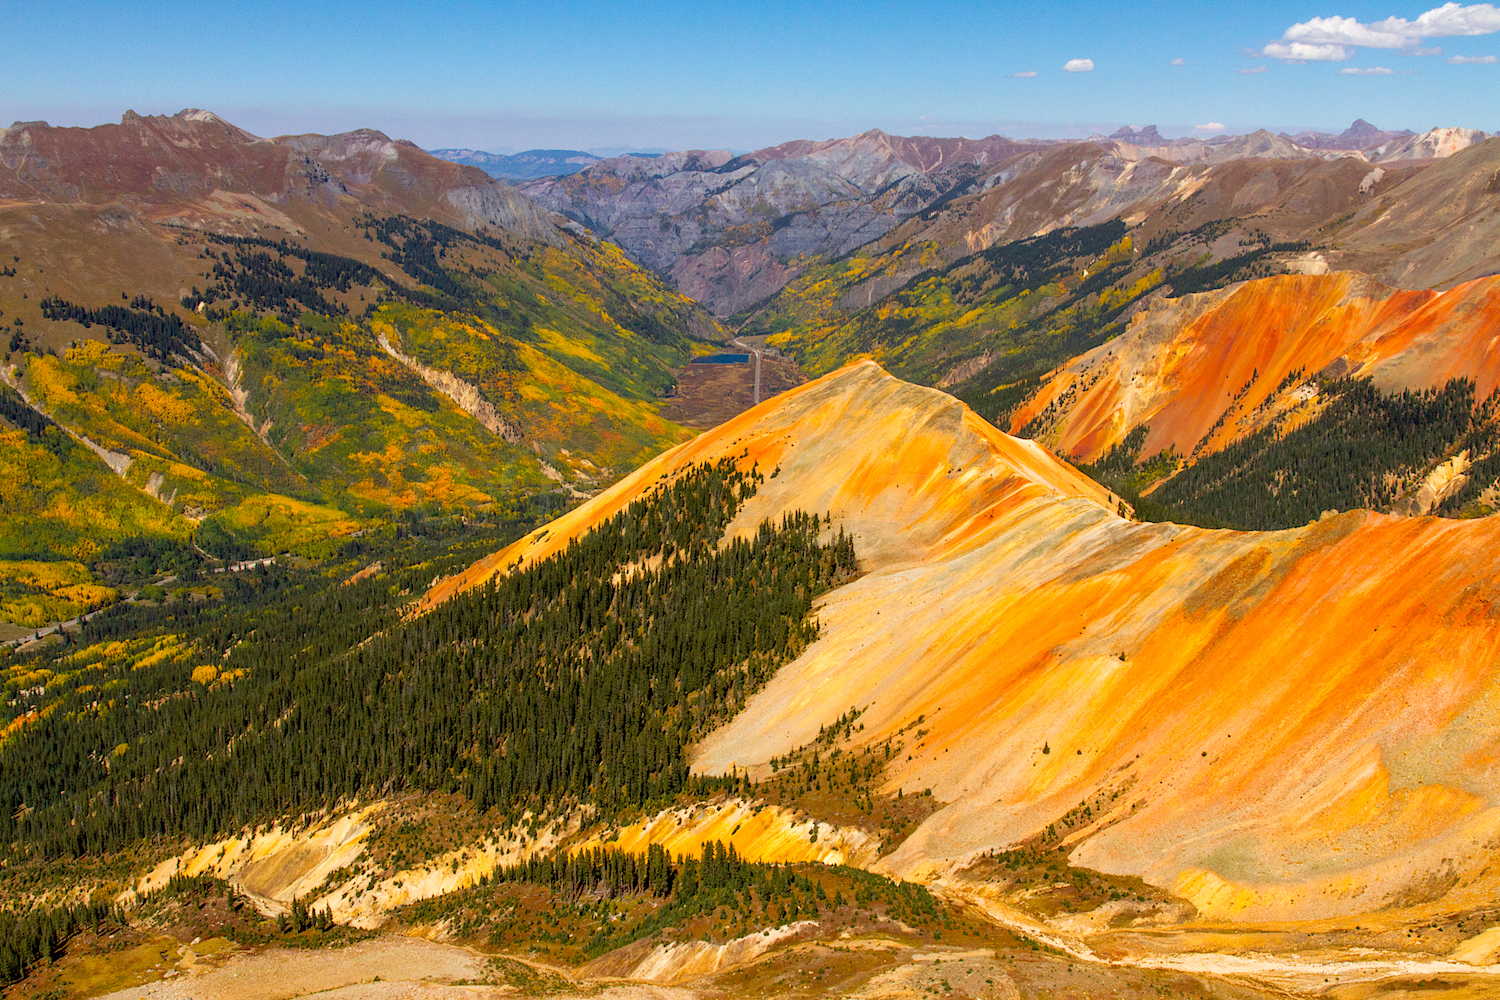 Red Mountain #3, Image # 6208